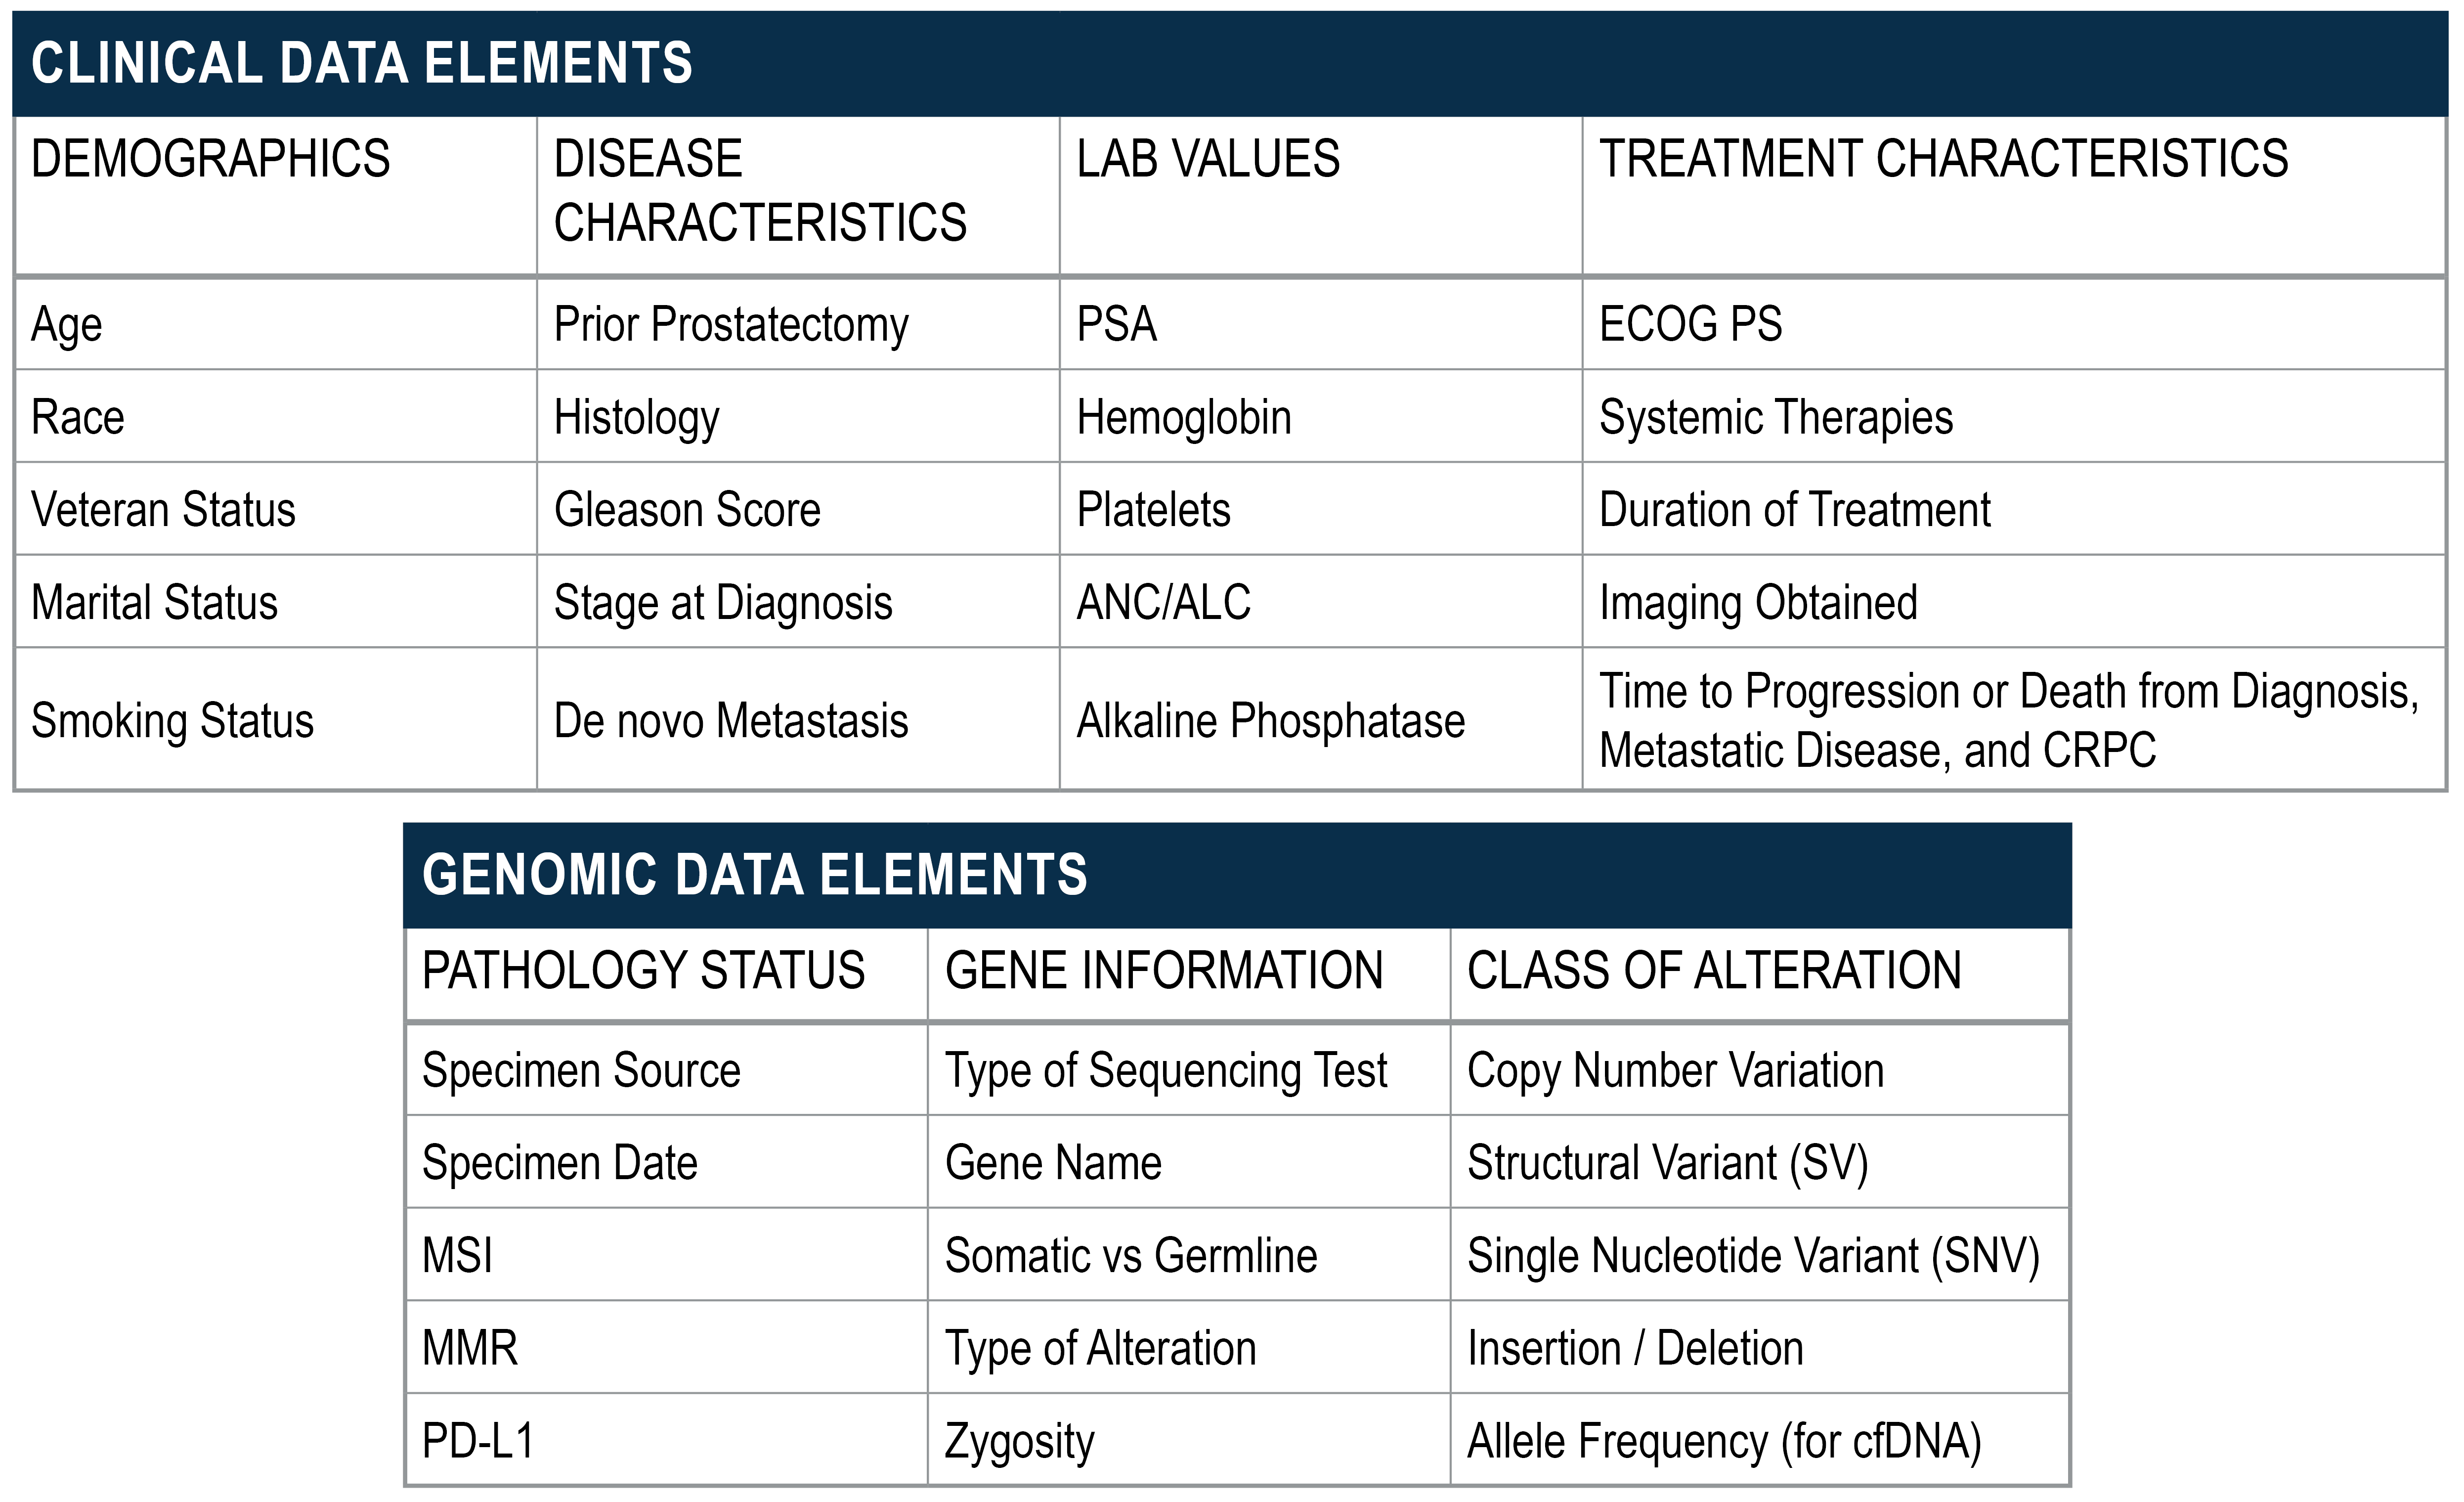 Clinical and Genomic Data Elements